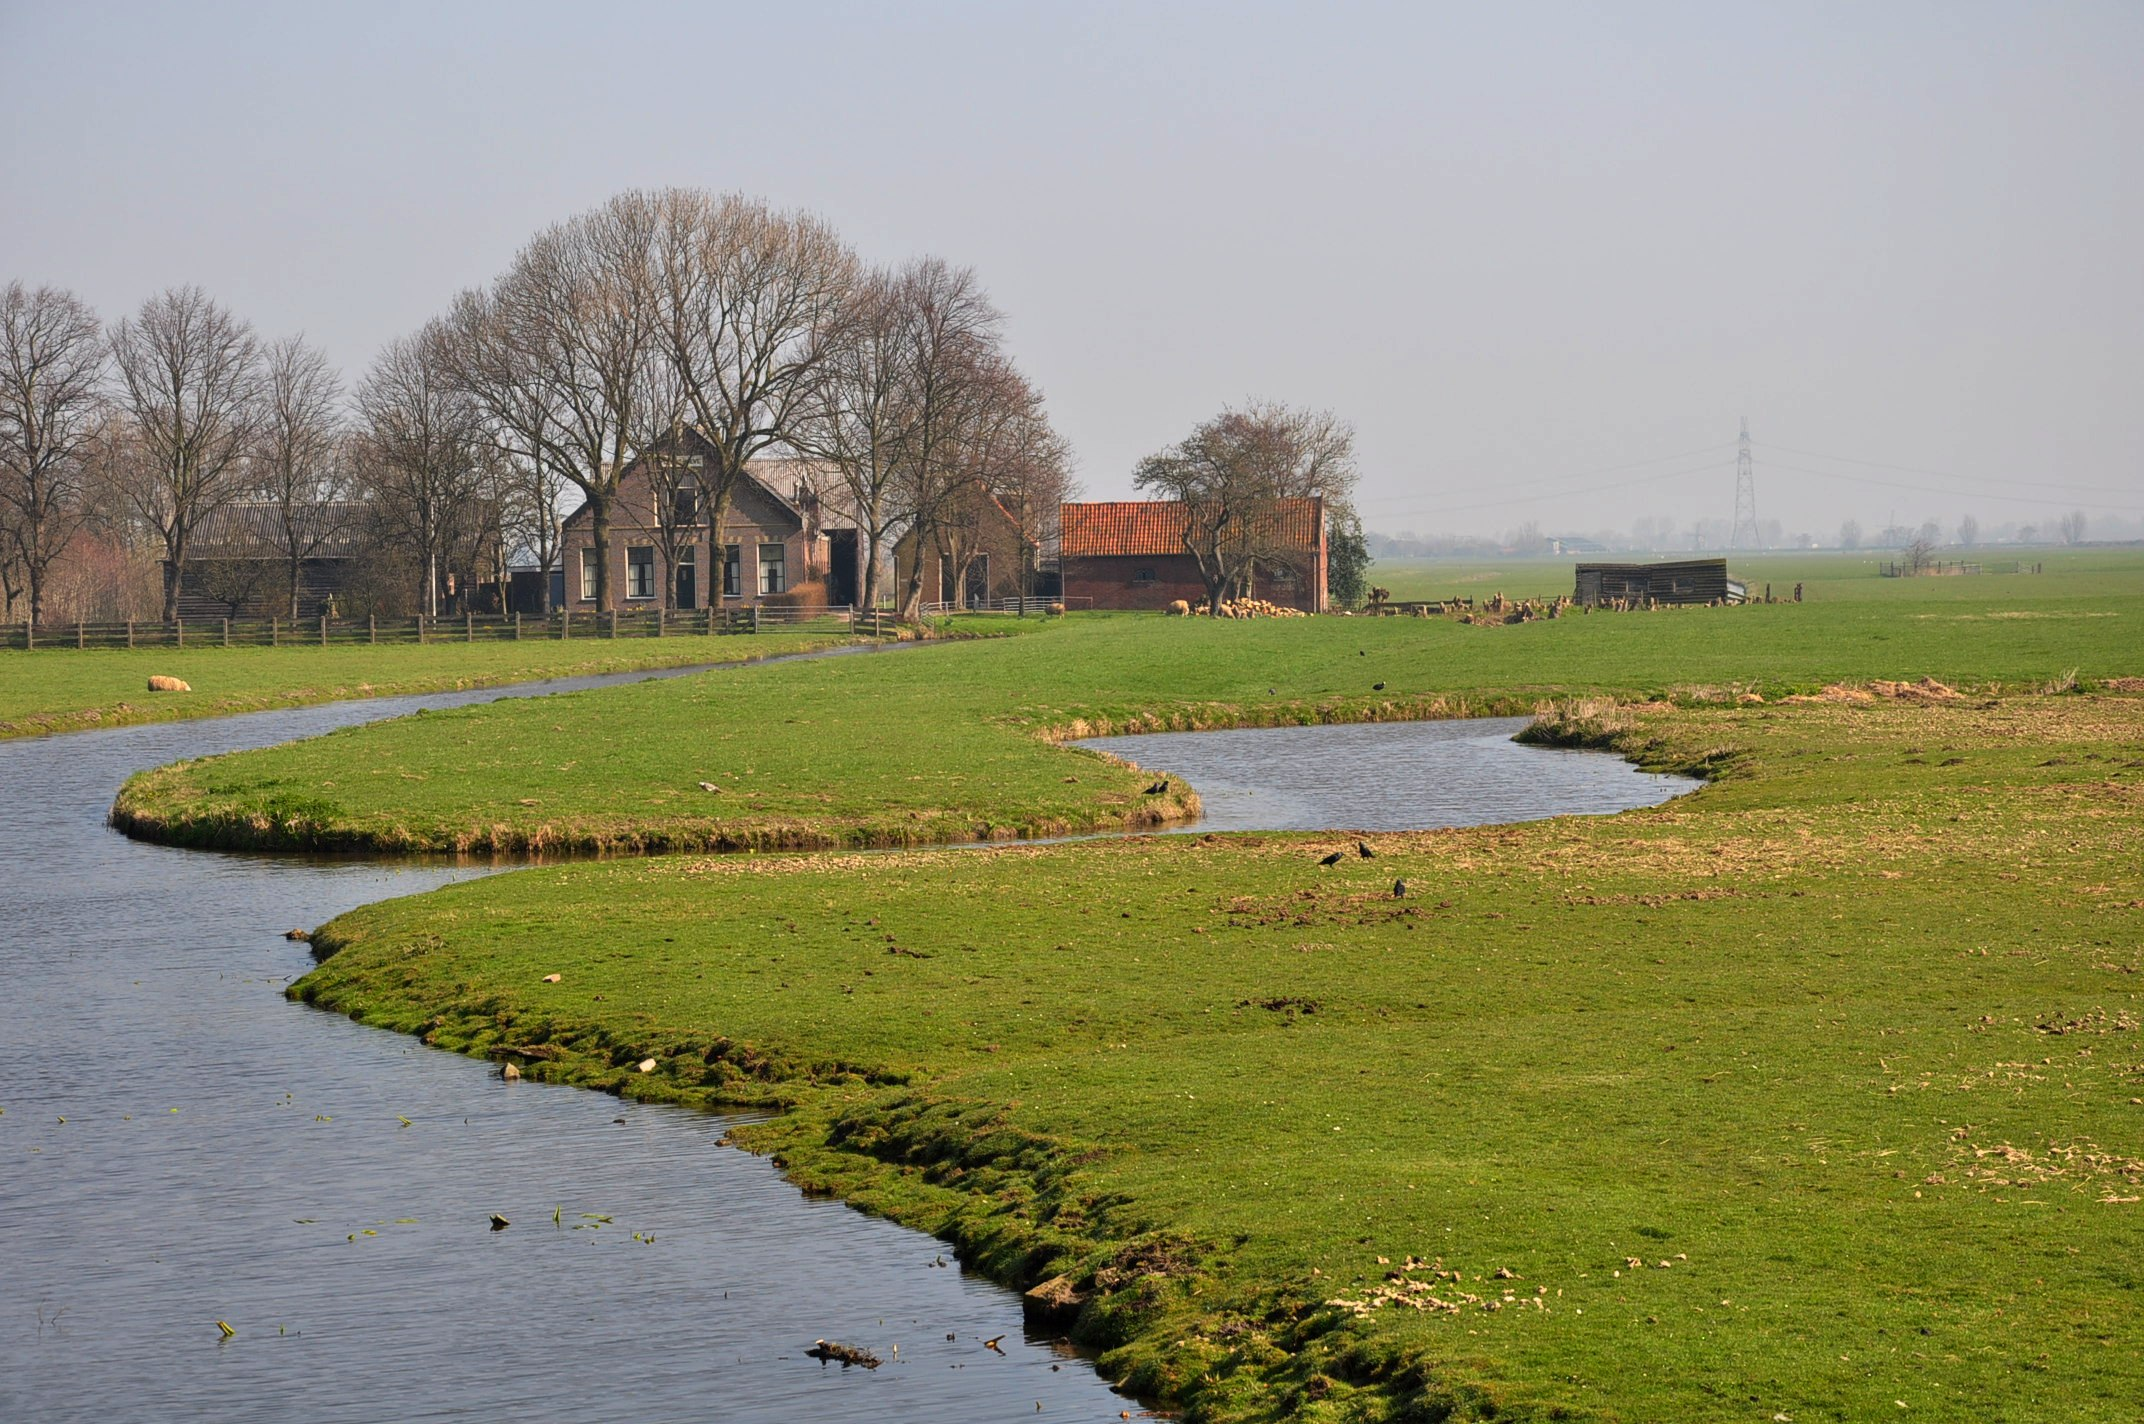 The Achthoven Polder in the municipality of Leiderdorp (a few km east of Leiden, South Holland, Netherlands)